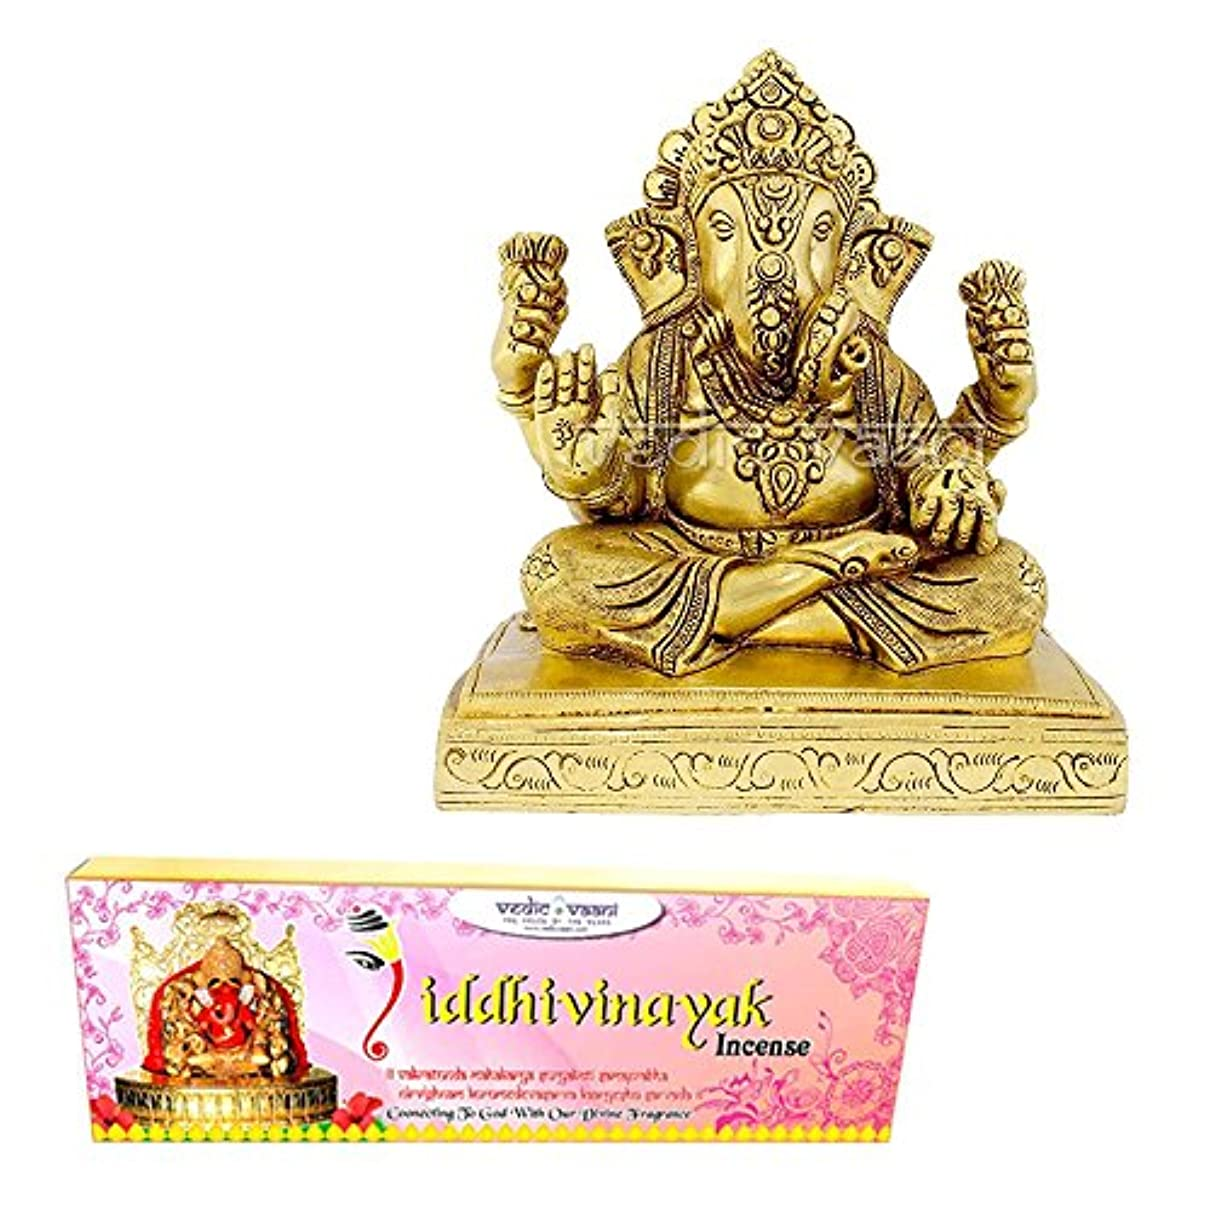 マッシュボーナスセレナVedic Vaani Dagadusheth Ganpati Bappa Fine Idol In Brass With Siddhi Vinayak Incense